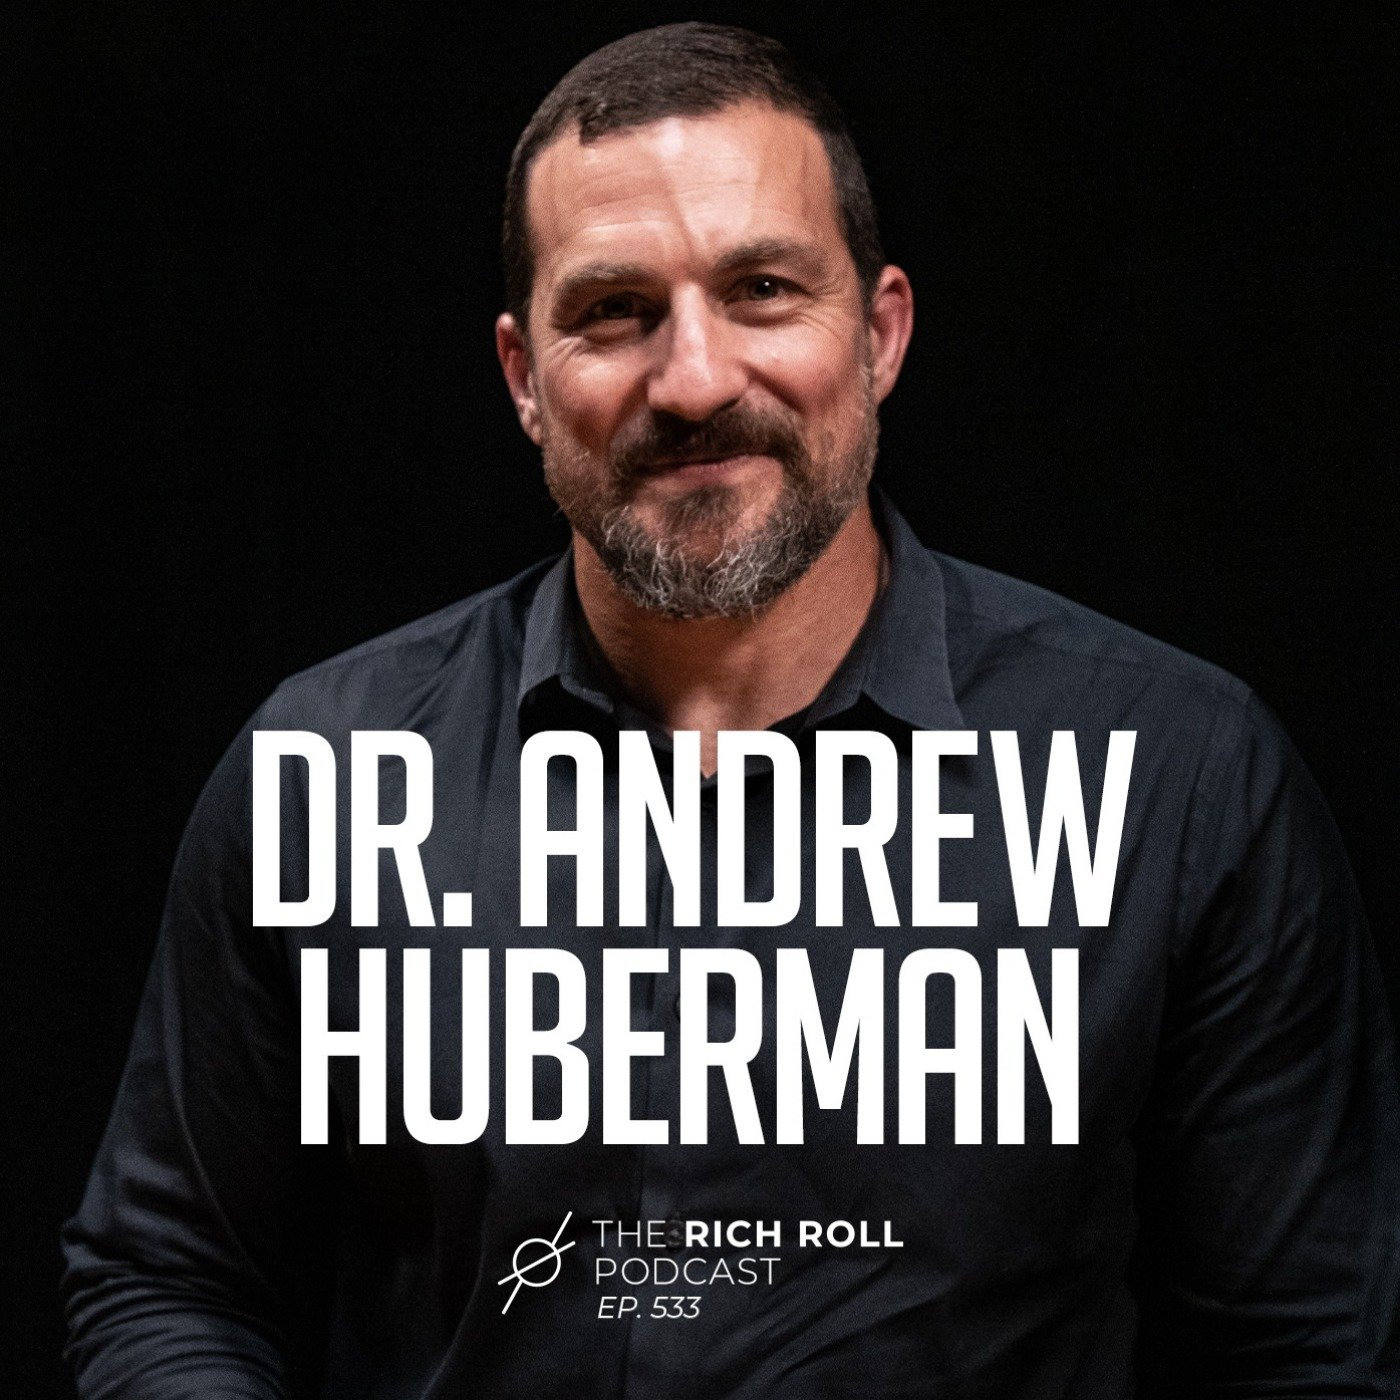 Dr. Andrew Huberman on The Rich roll Podcast